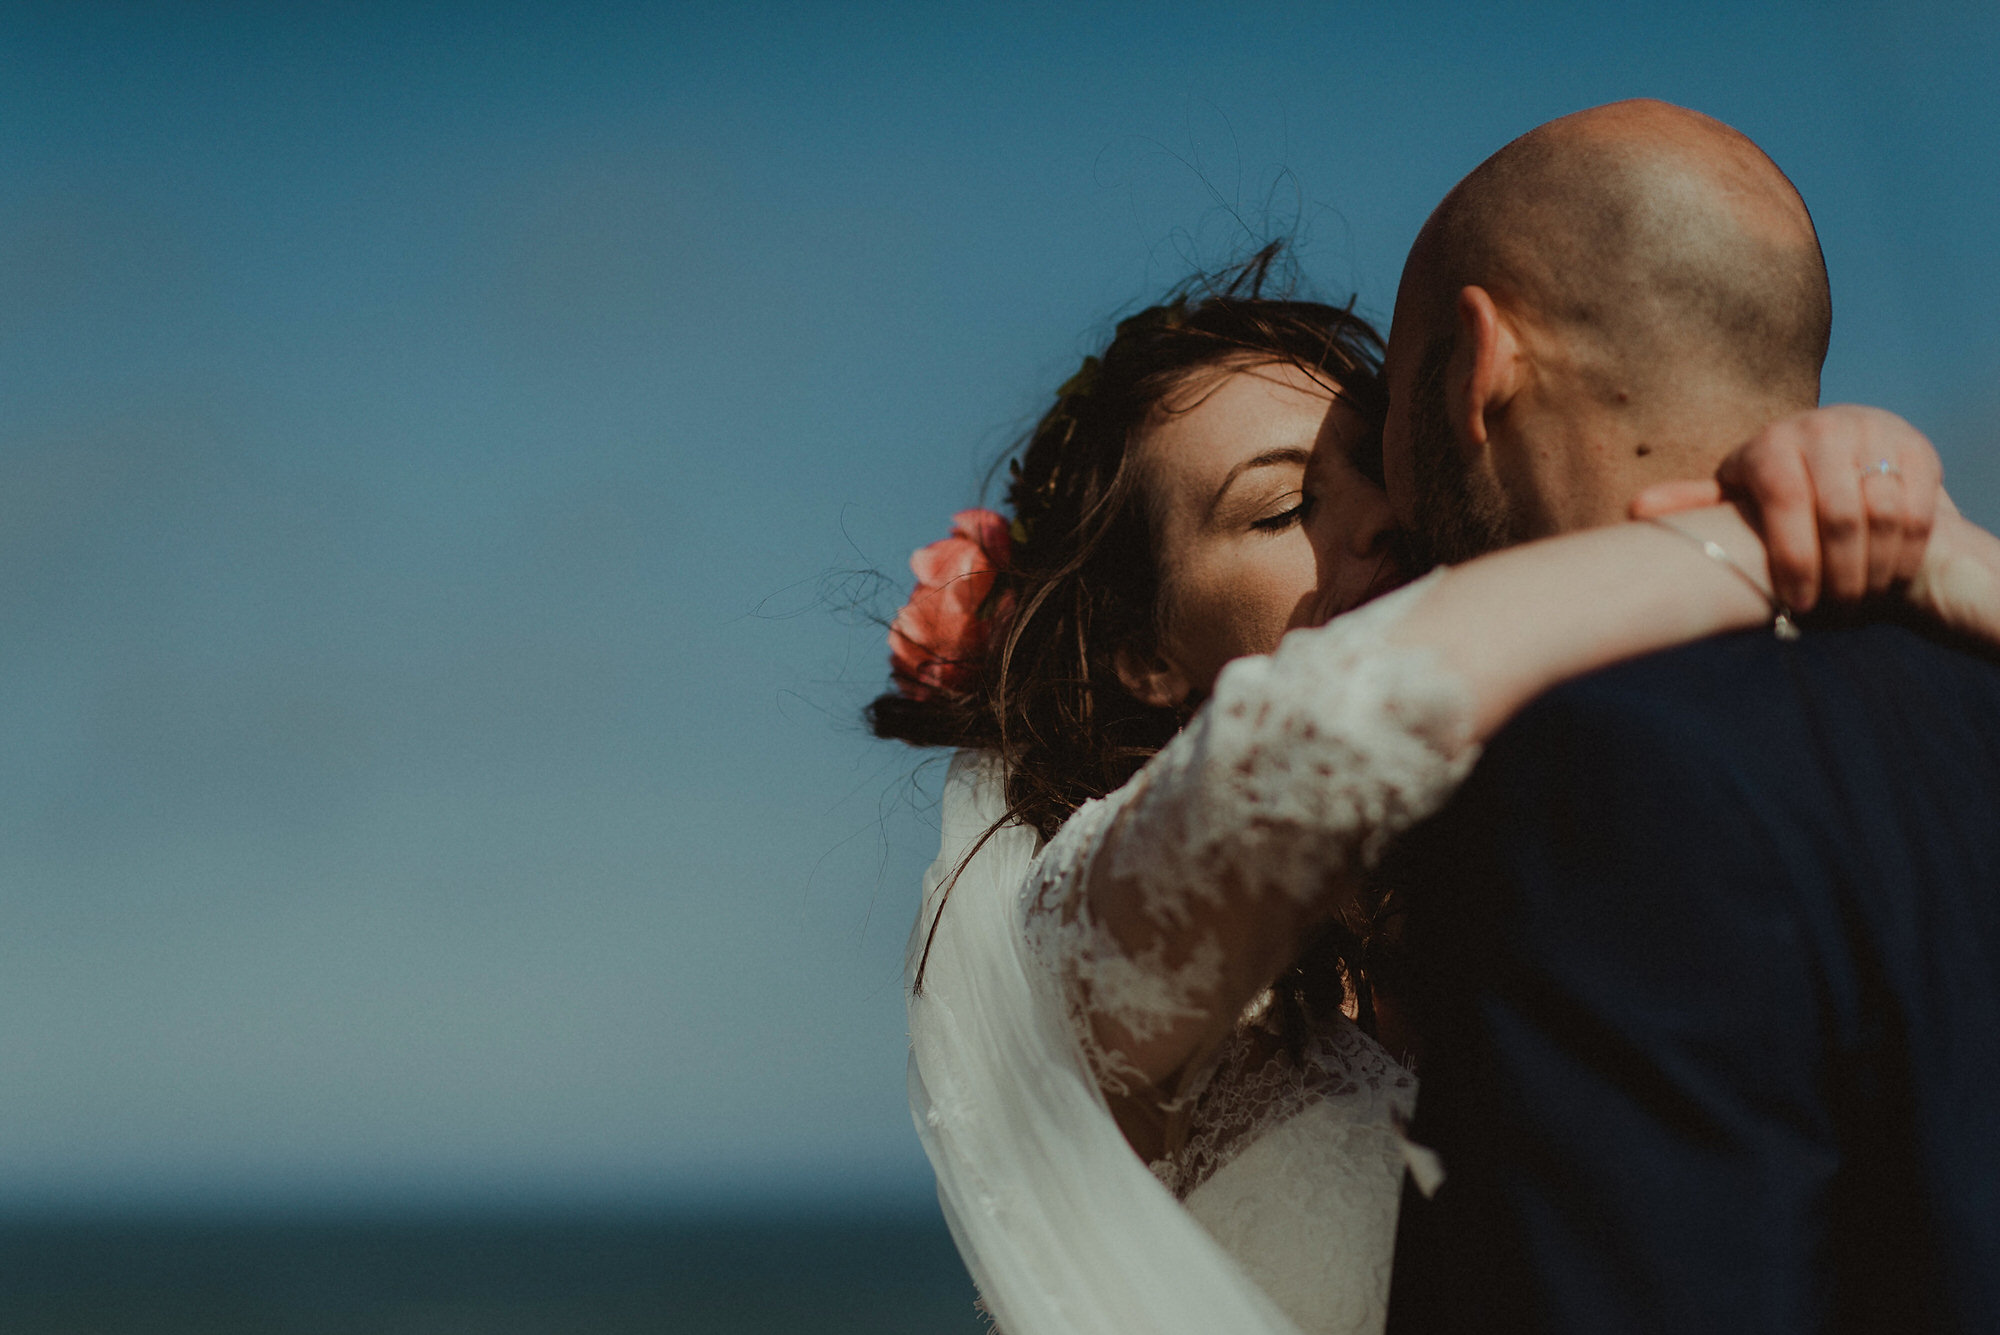 Epic Wedding at Harvest Moon, East Lothian | Nikki Leadbetter